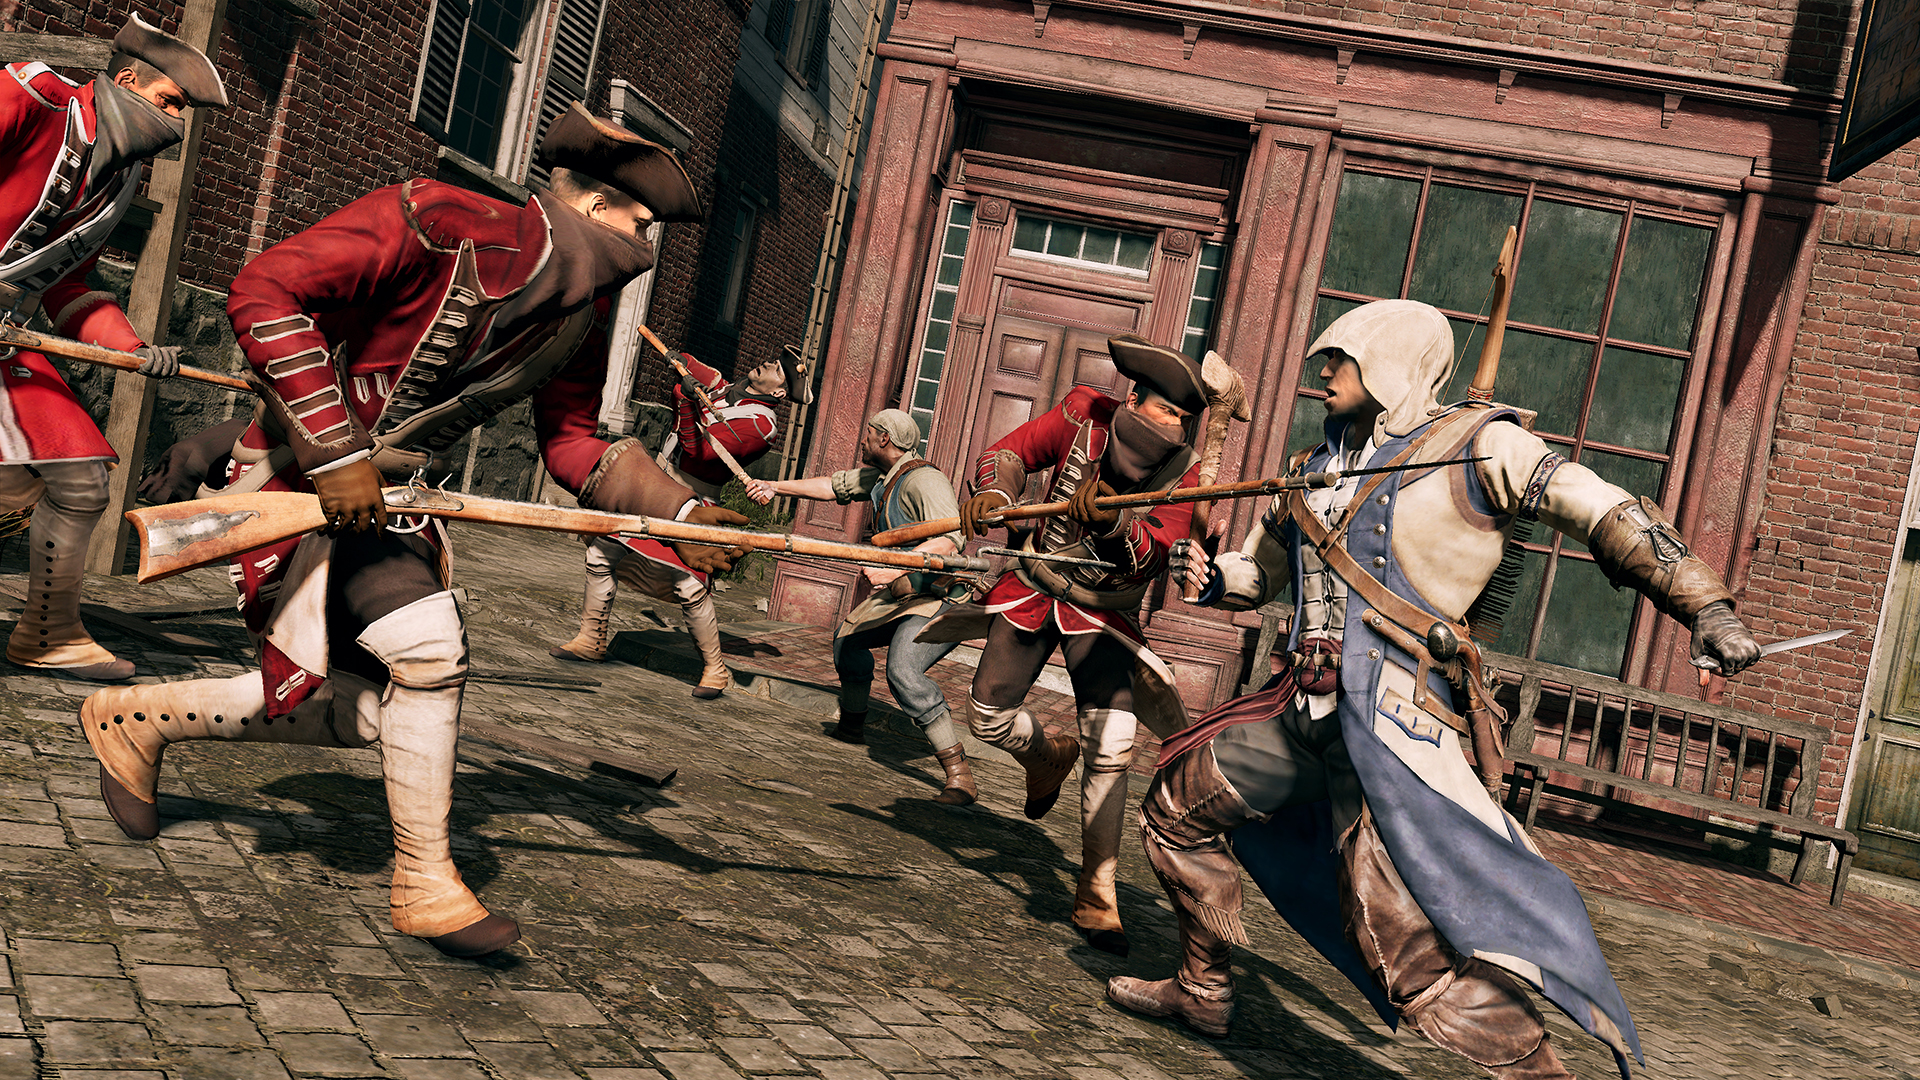 Screenshot for the game Assassin's Creed III Remastered (v.1.03 + DLC) (2019) download torrent RePack